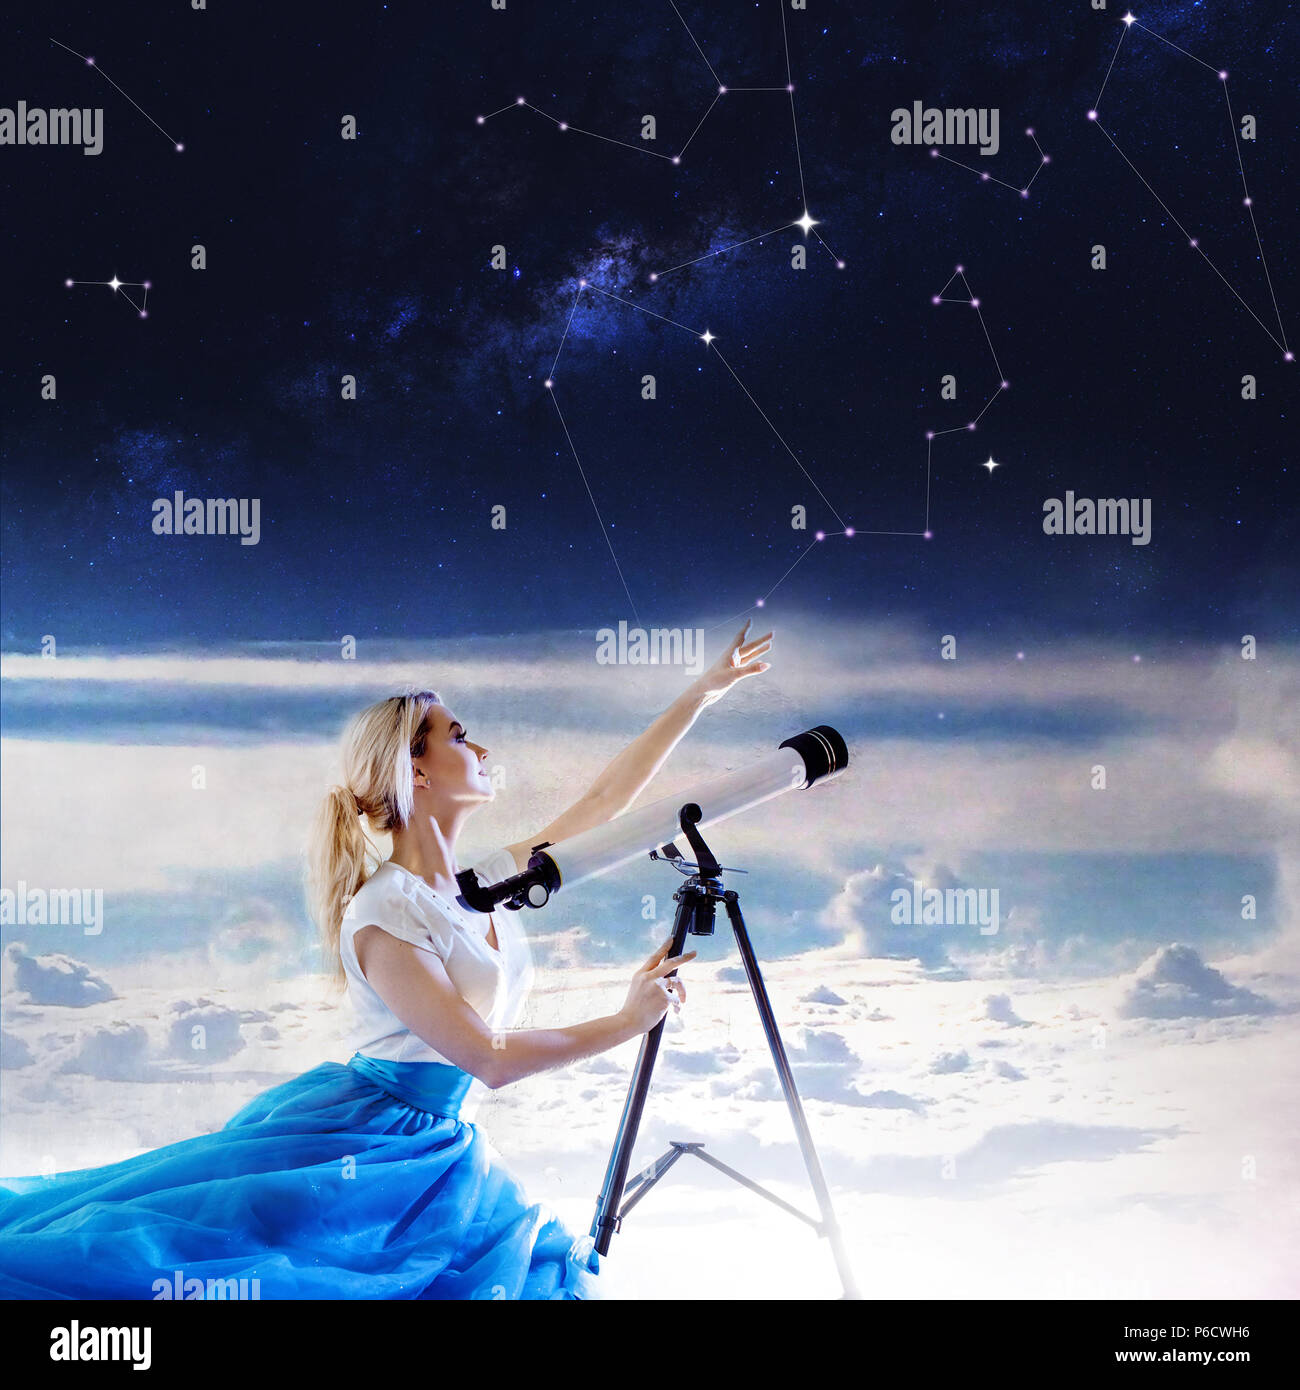 Young Woman Dreams Of The Future Concept Girl In The Sky With Clouds Looks Up And Uses A Telescope Dream And Set Goals Look Through The Telescope Stock Photo Alamy